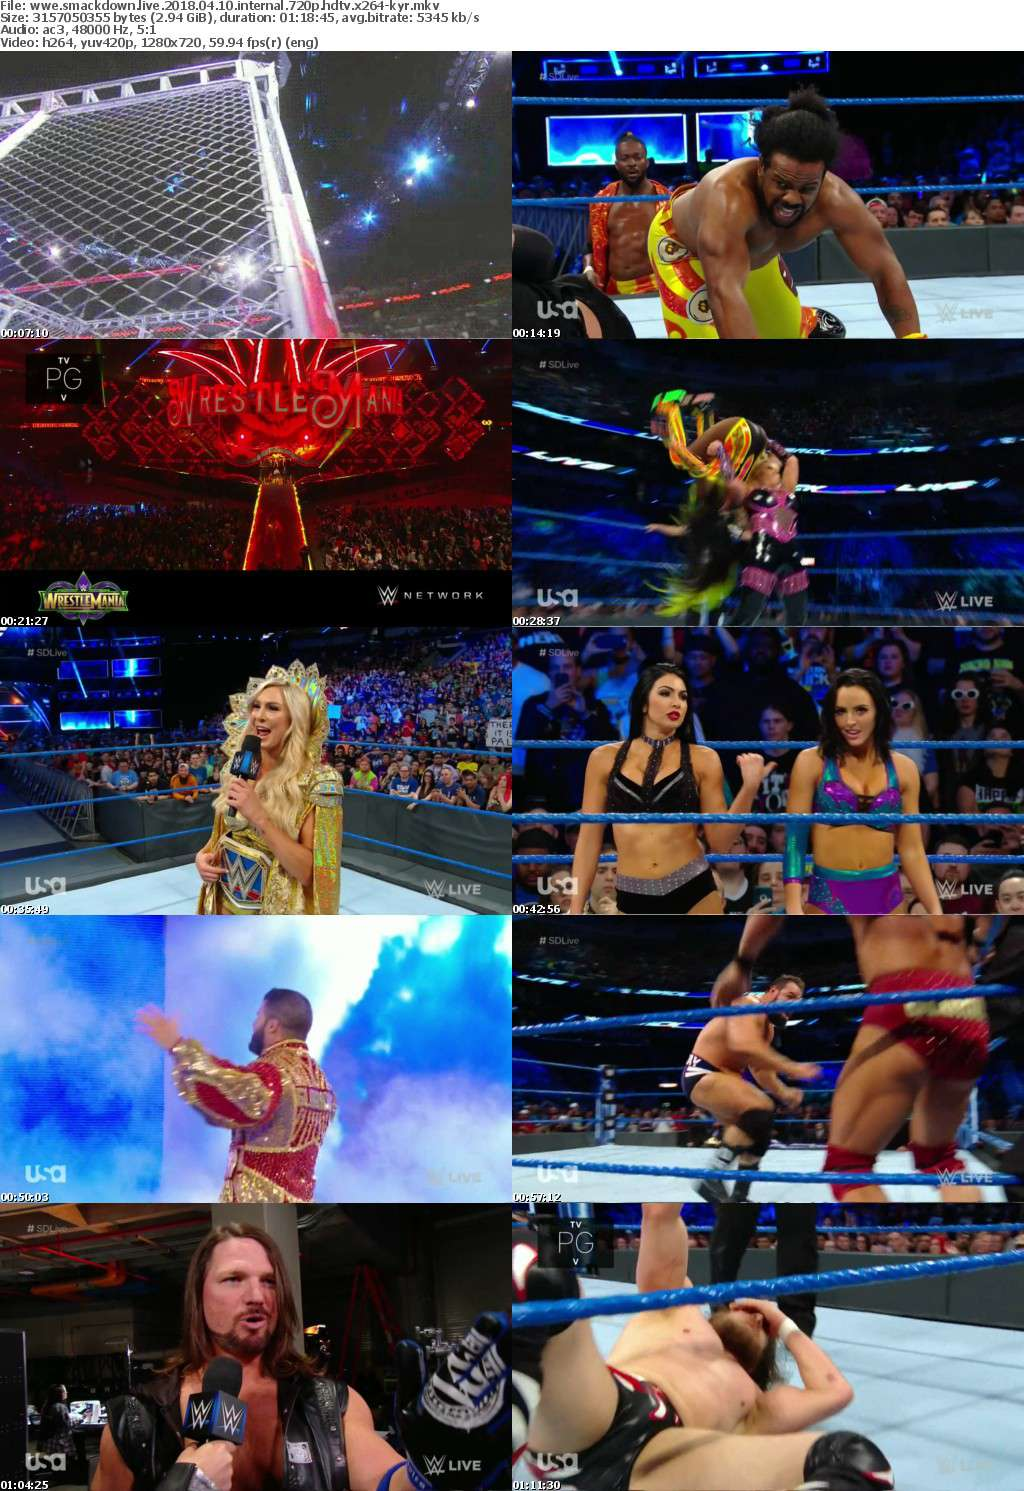 WWE SmackDown Live 2018 04 10 iNTERNAL 720p HDTV x264-KYR